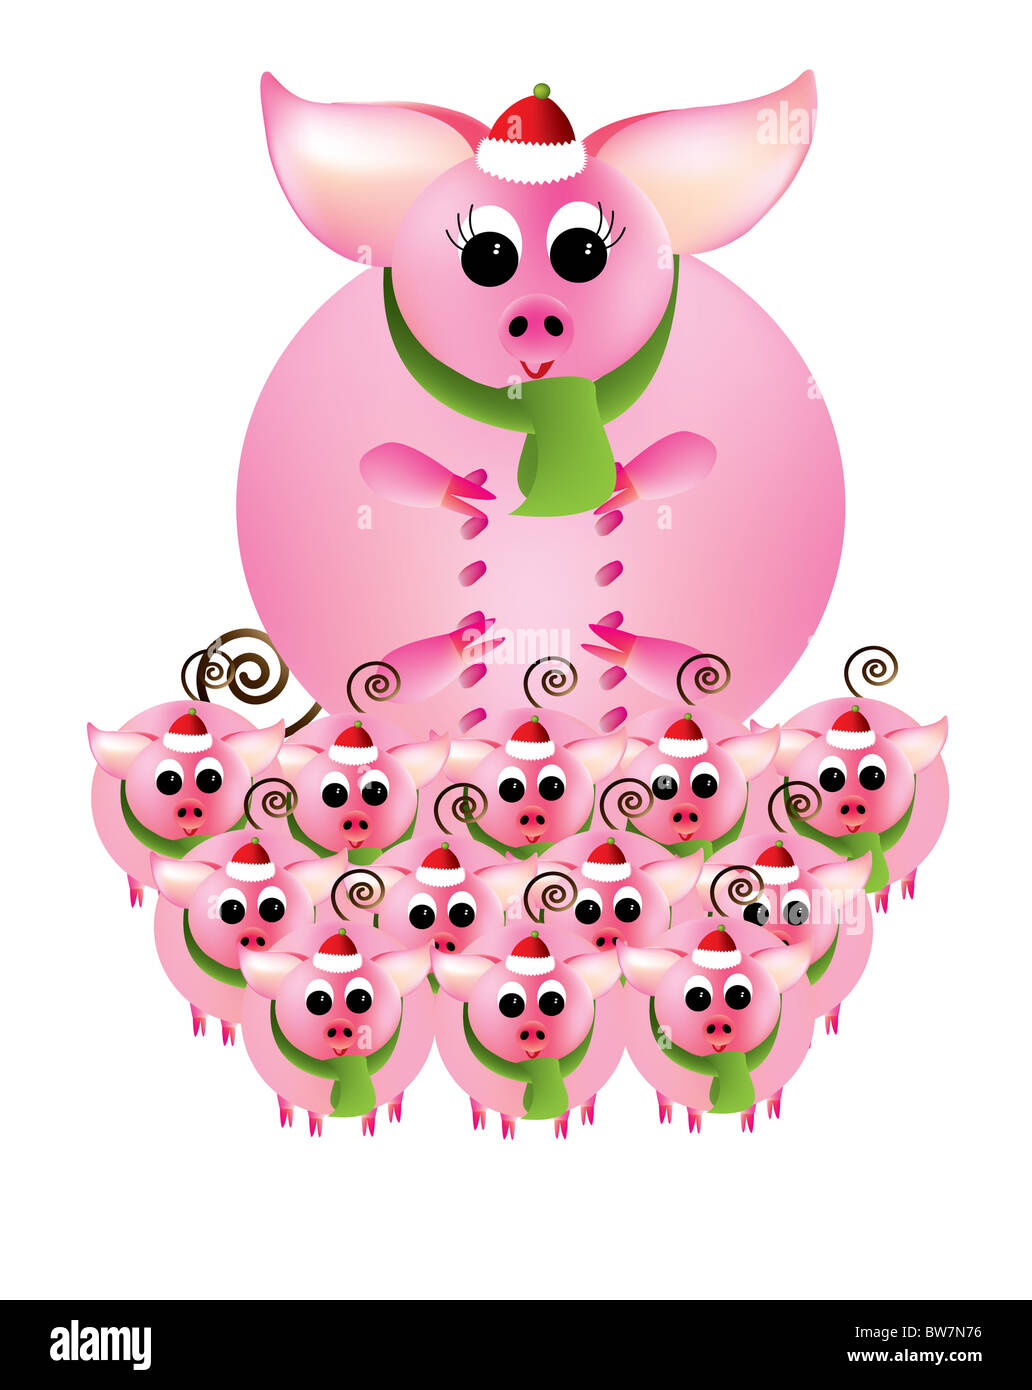 Merry Christmas from pink piggies on a white background - Stock Image